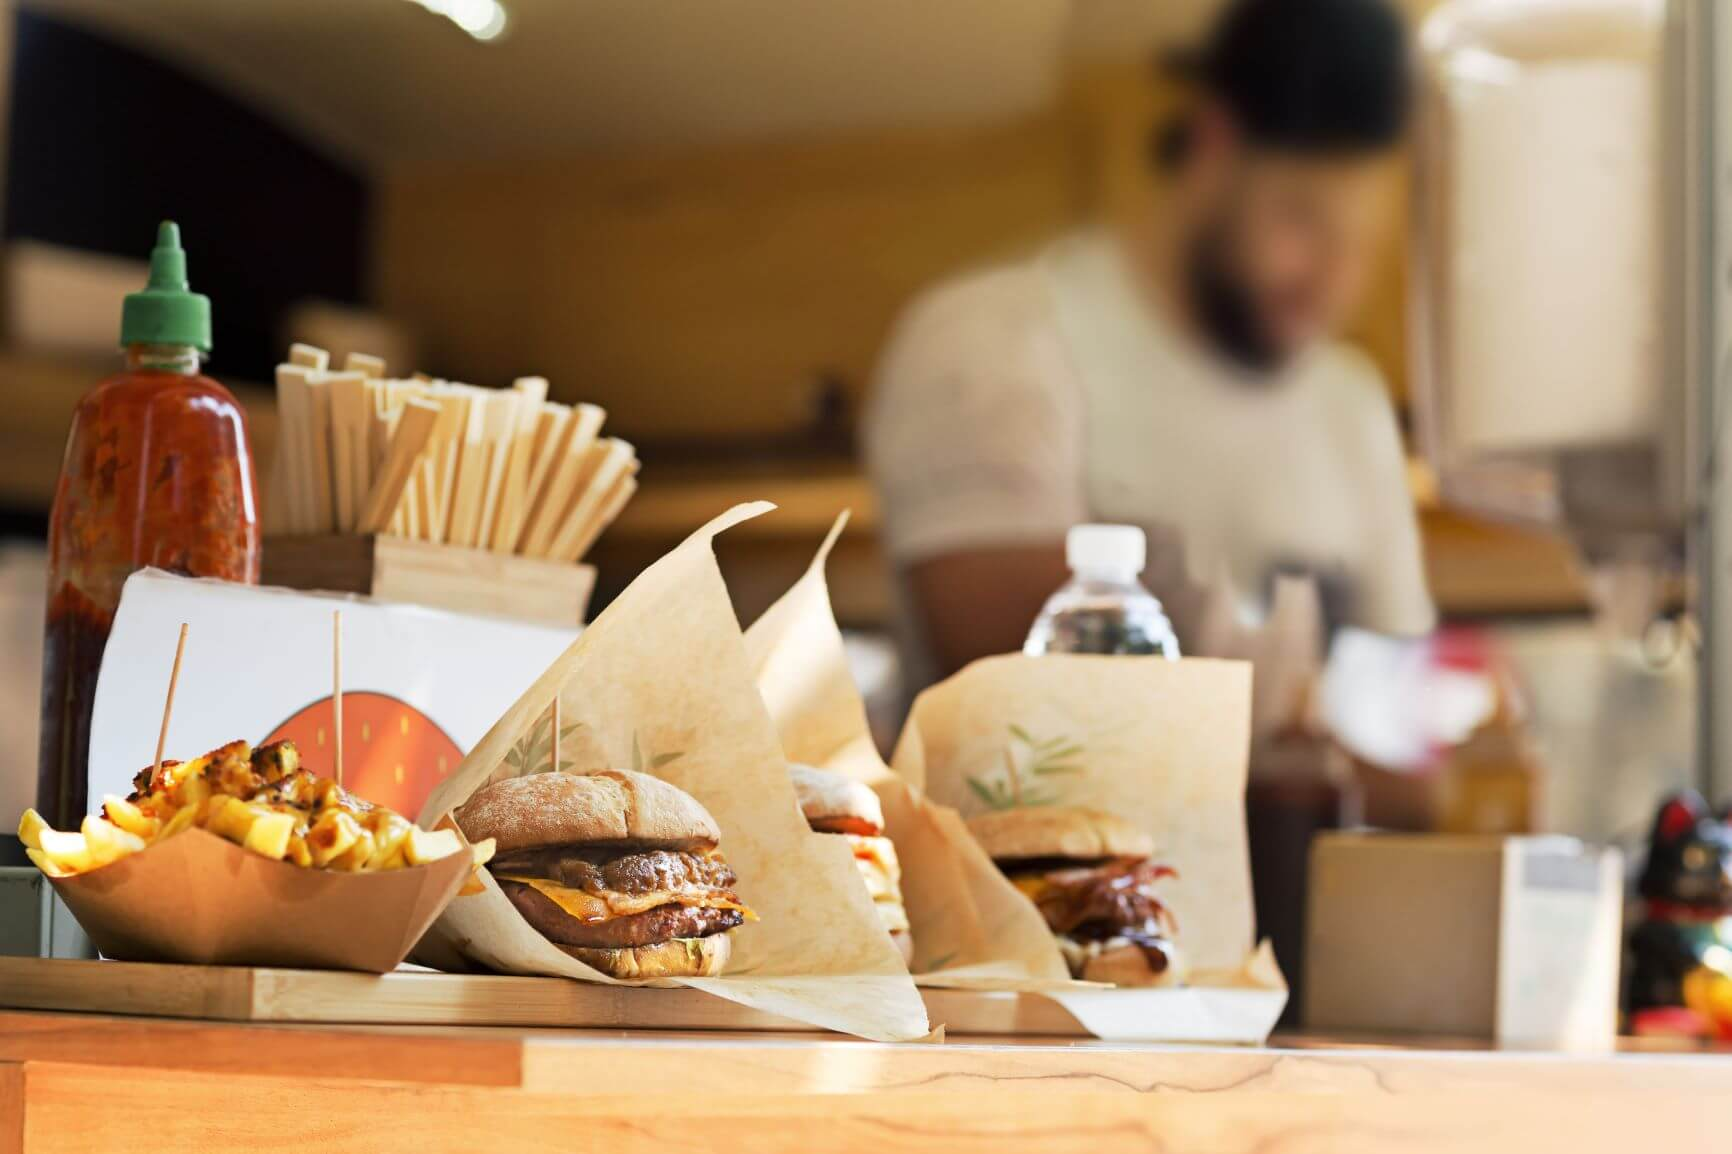 Setting Up a Food Delivery Business